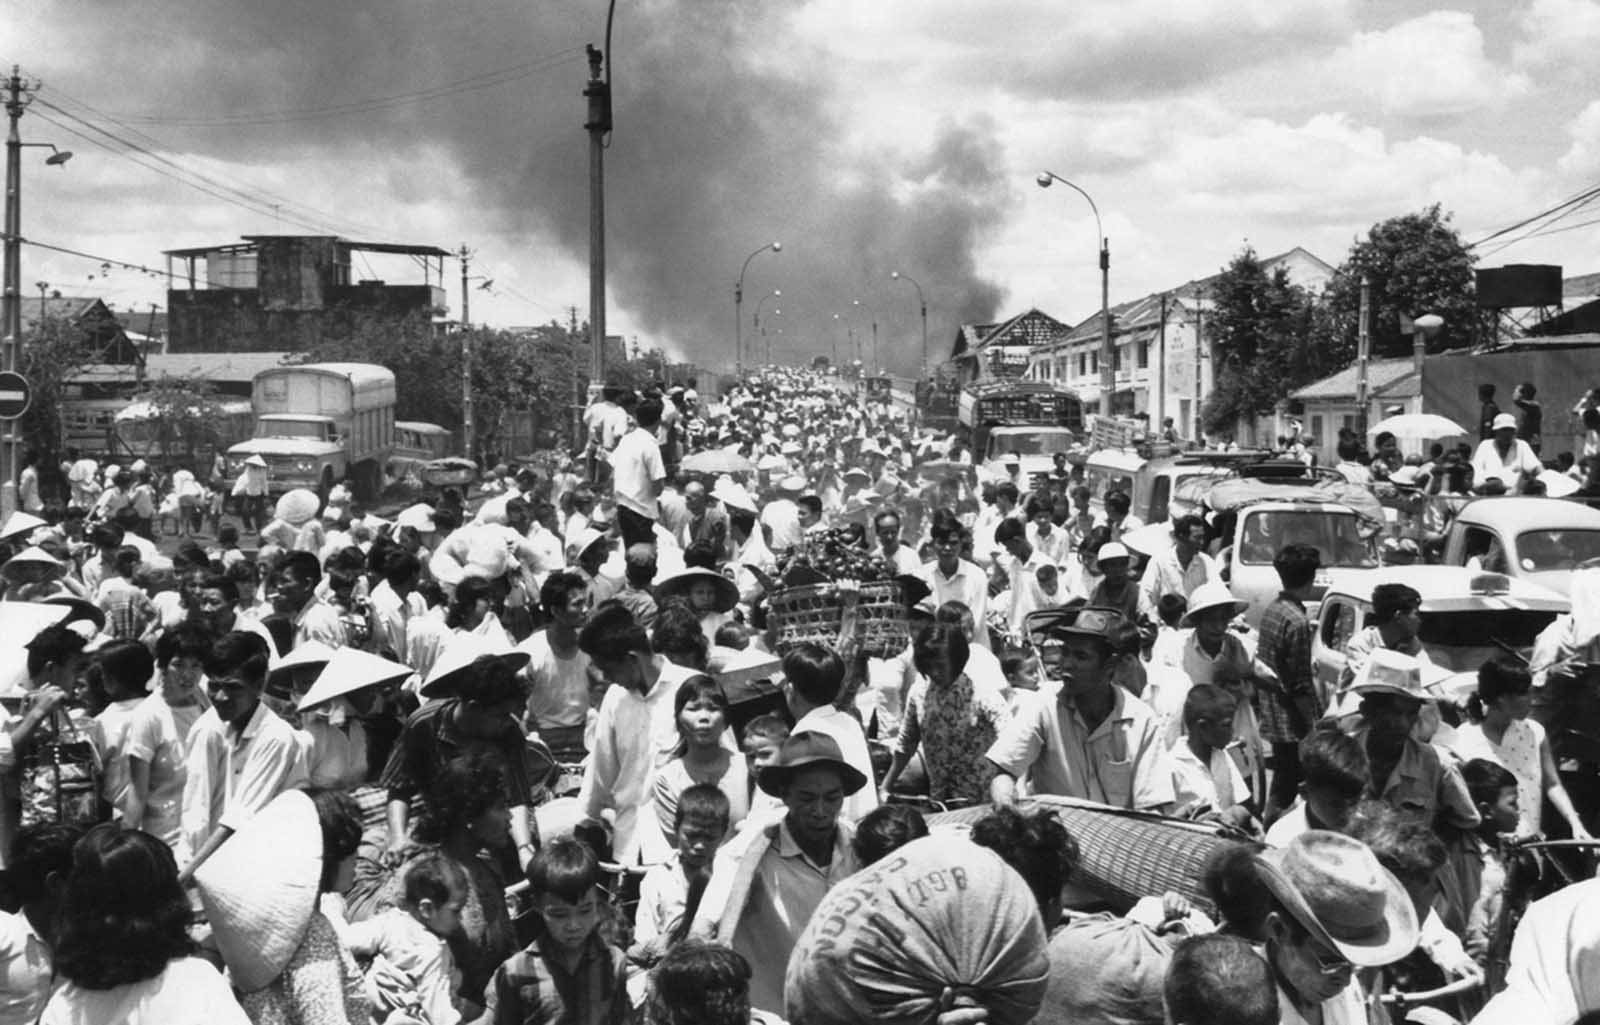 Smoke rises from the southwestern part of Saigon on May 7, 1968, as residents stream across the bridge leaving into the capital to escape heavy fighting between the Viet Cong and South Vietnamese soldiers.